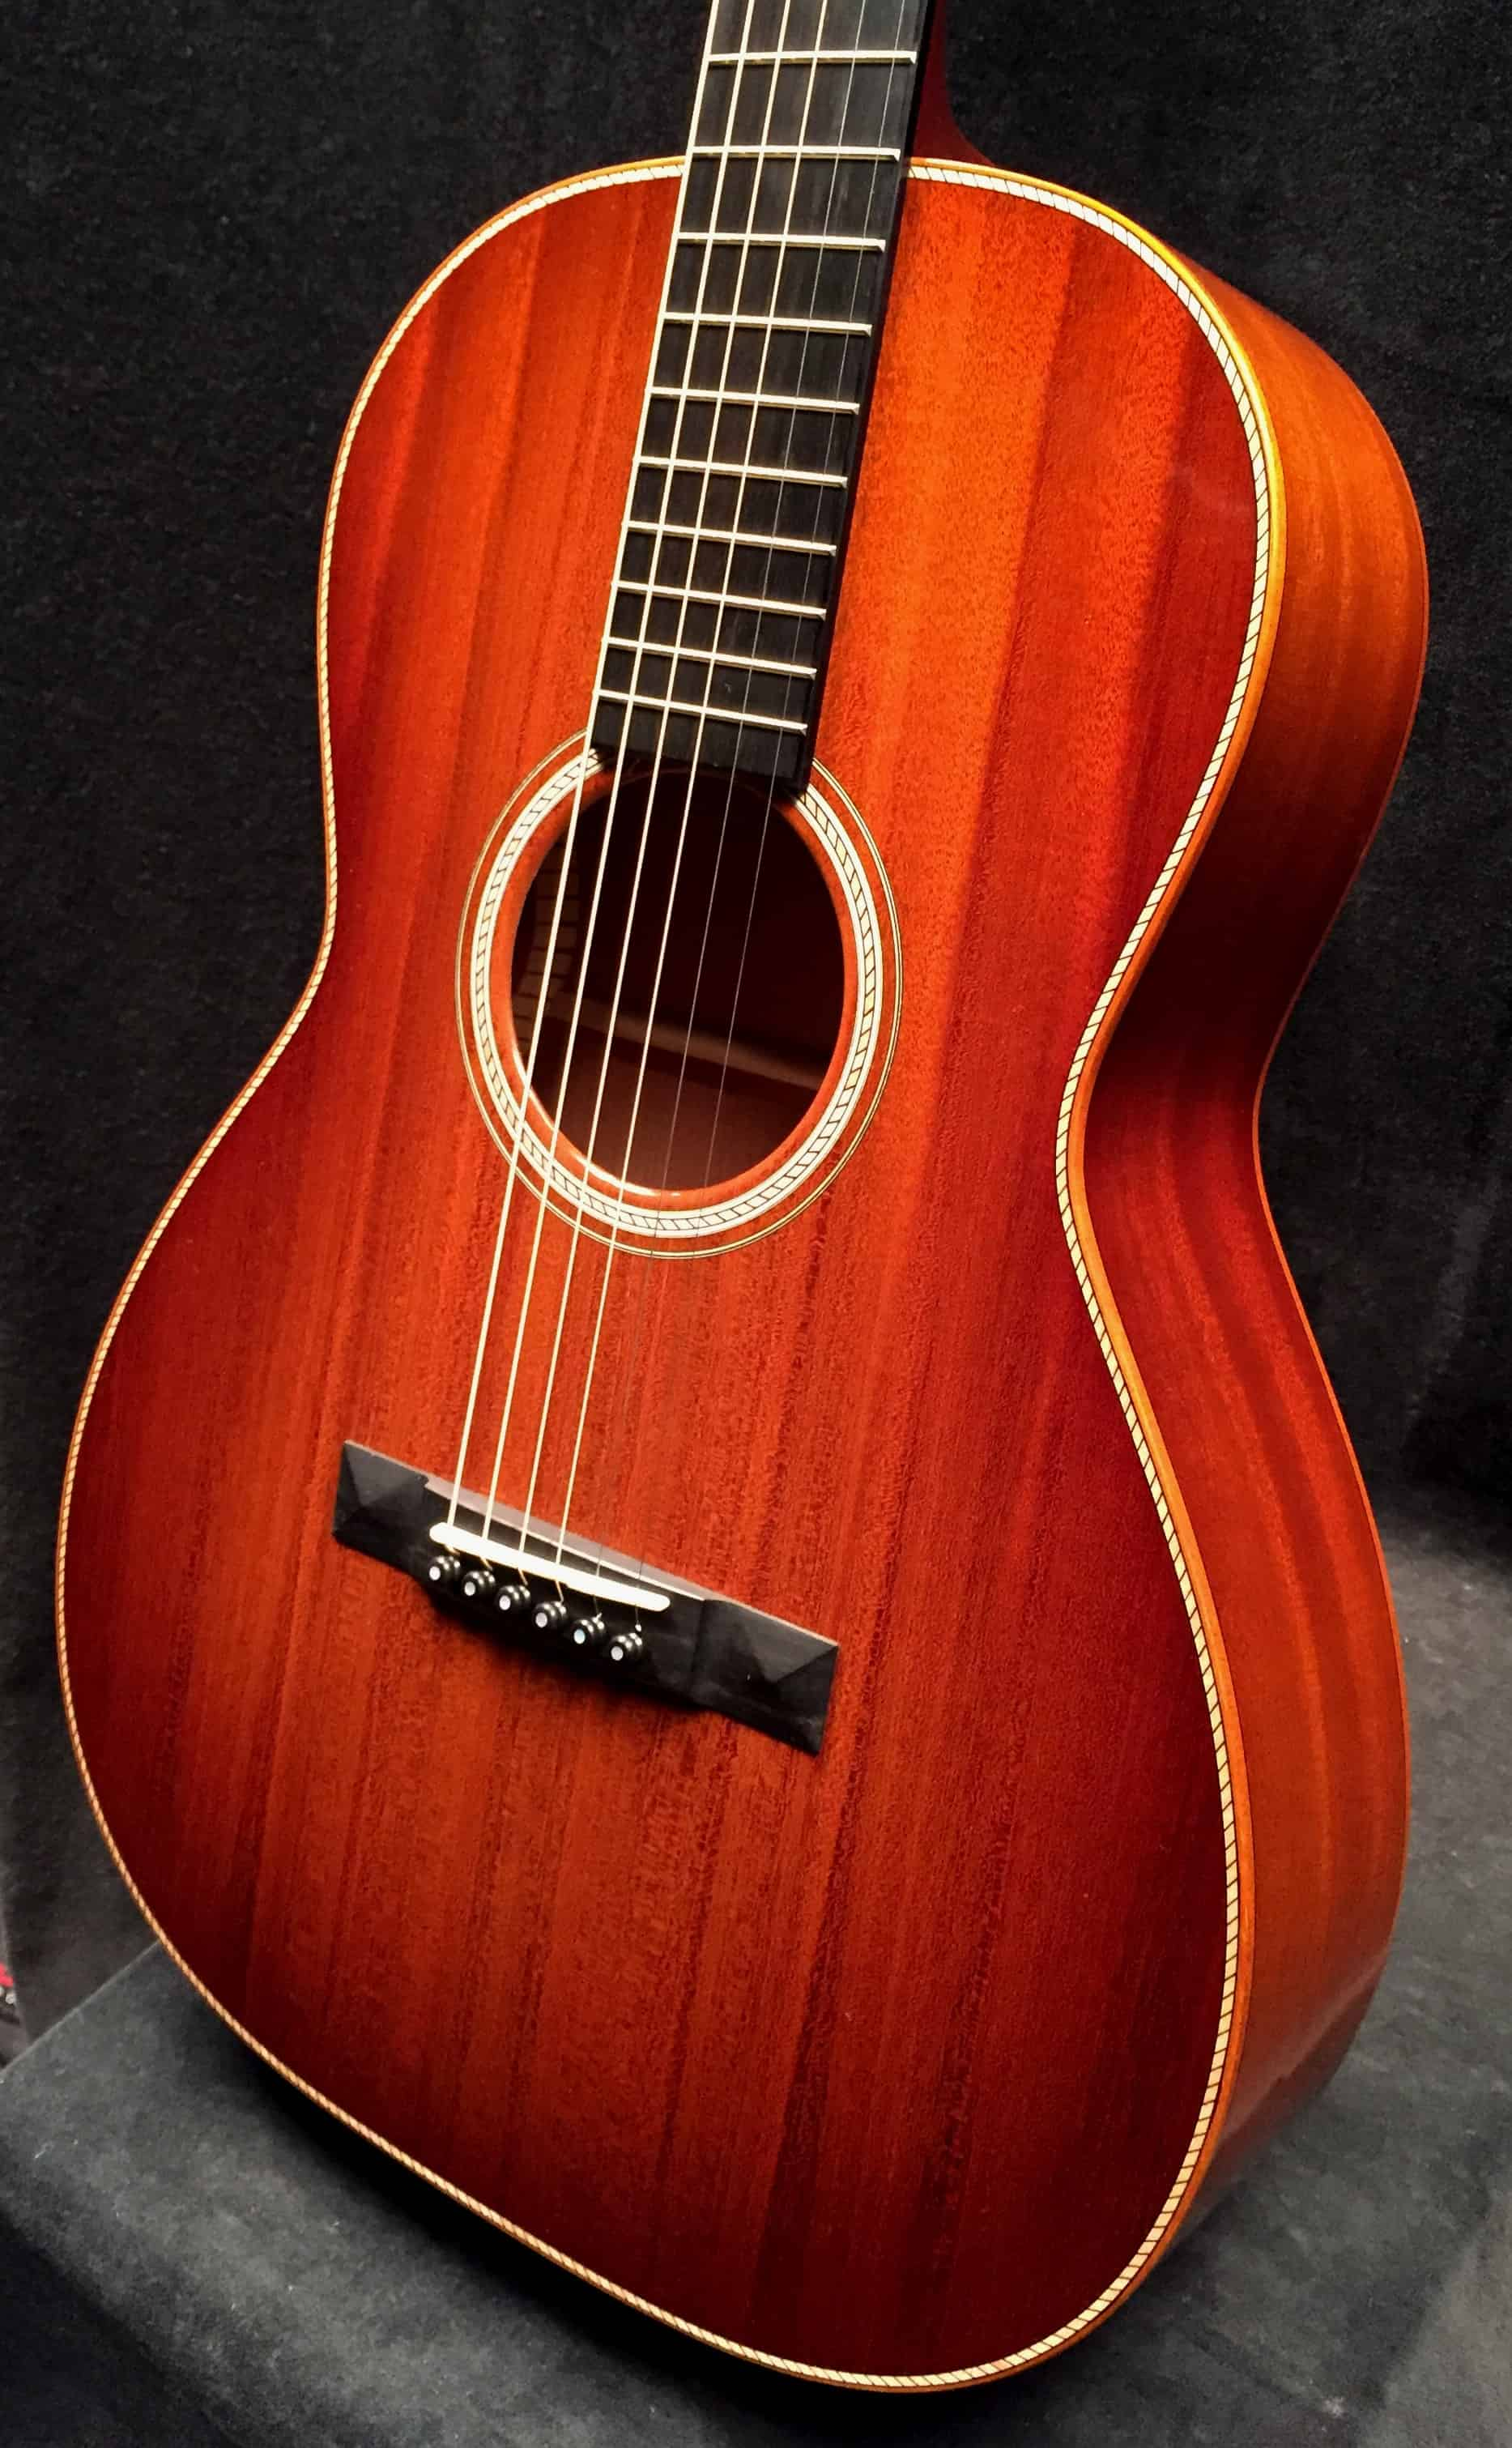 Just Shipped Monday Sept 17th: Custom 1929 OO Model